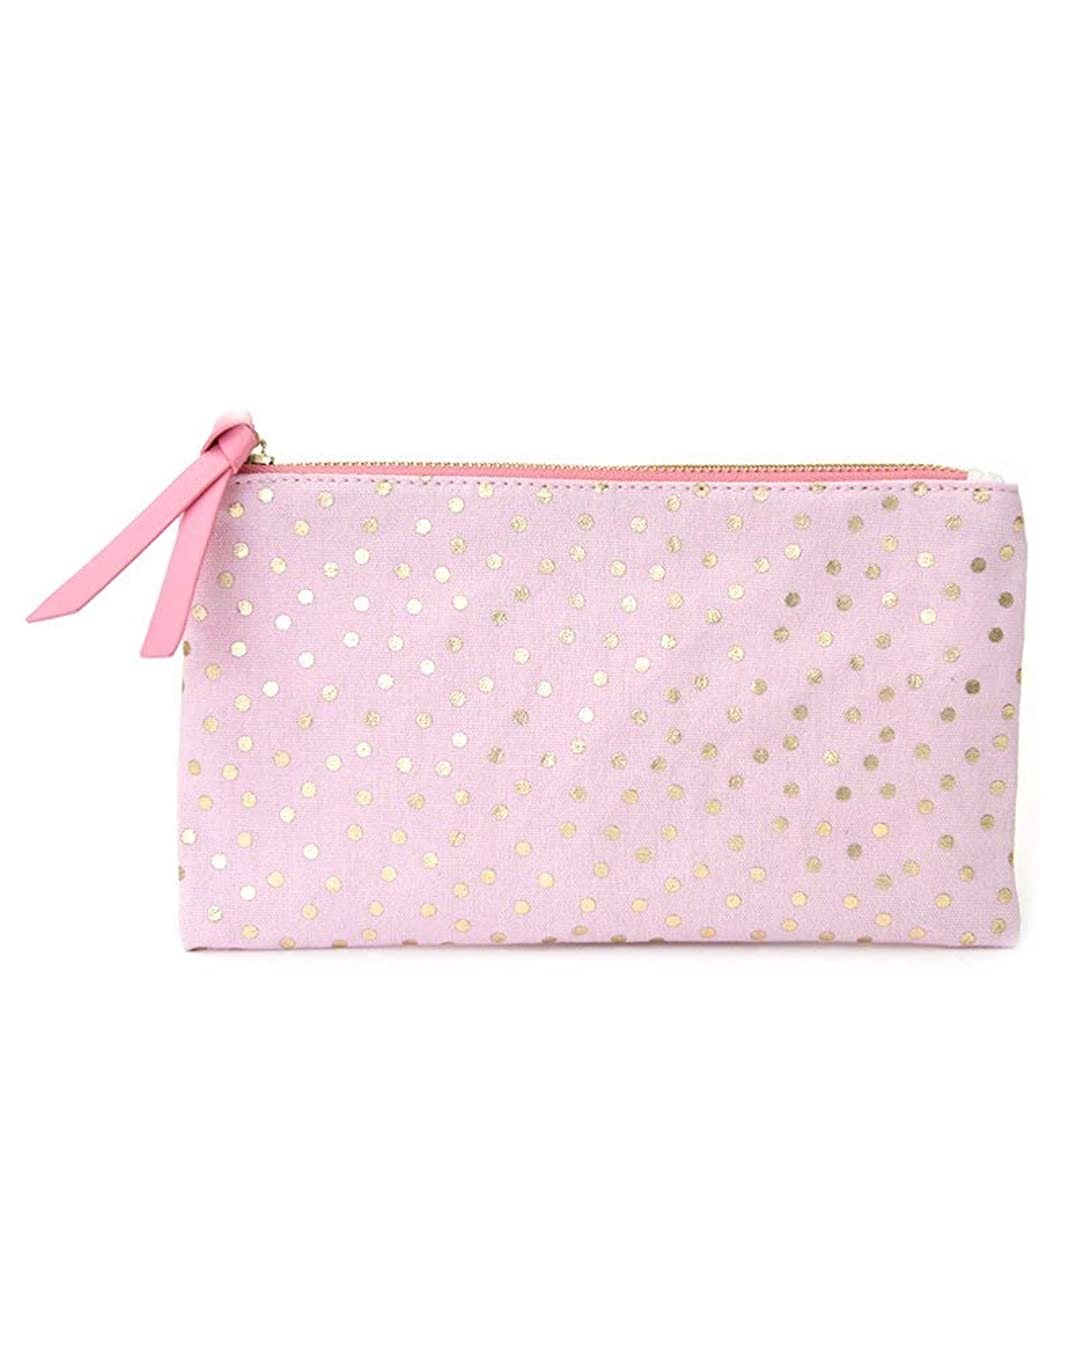 Gartner Studios Pretty Pink with Gold Foil Dots Canvas Pouch, 1 Count